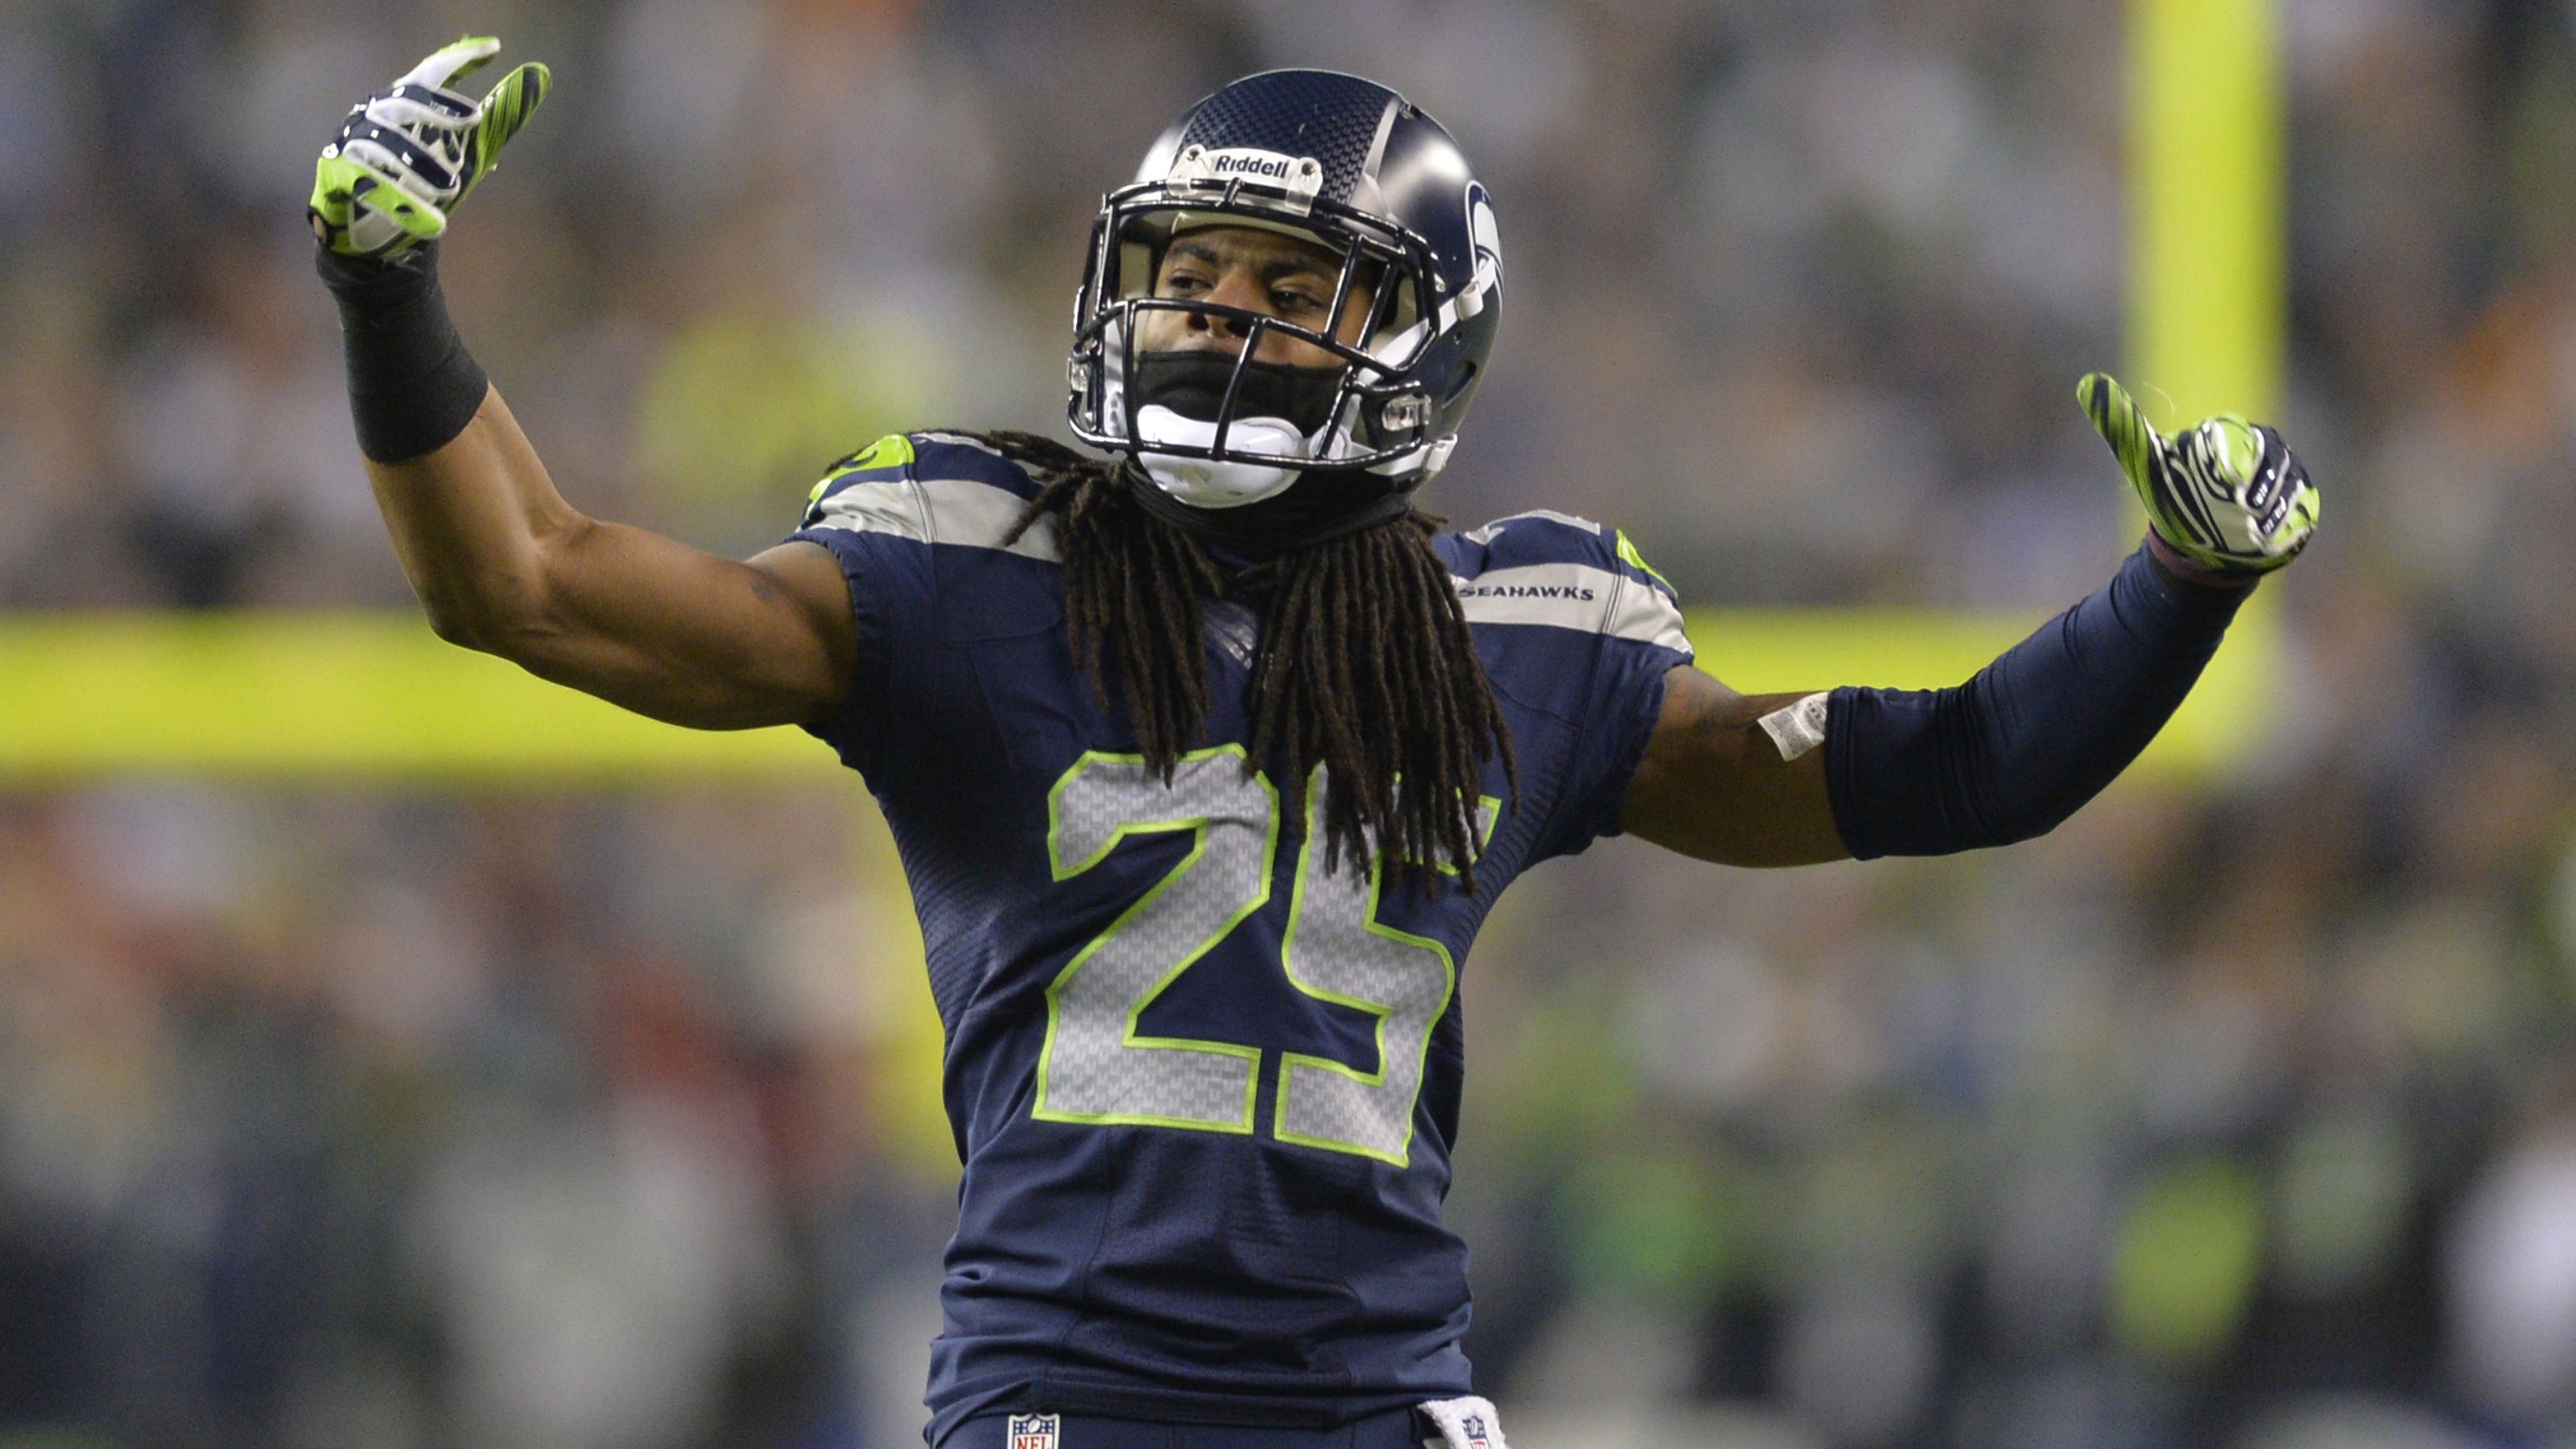 Richard Sherman Seattle Seahawks Wallpapers with High Resolution 3200x1800